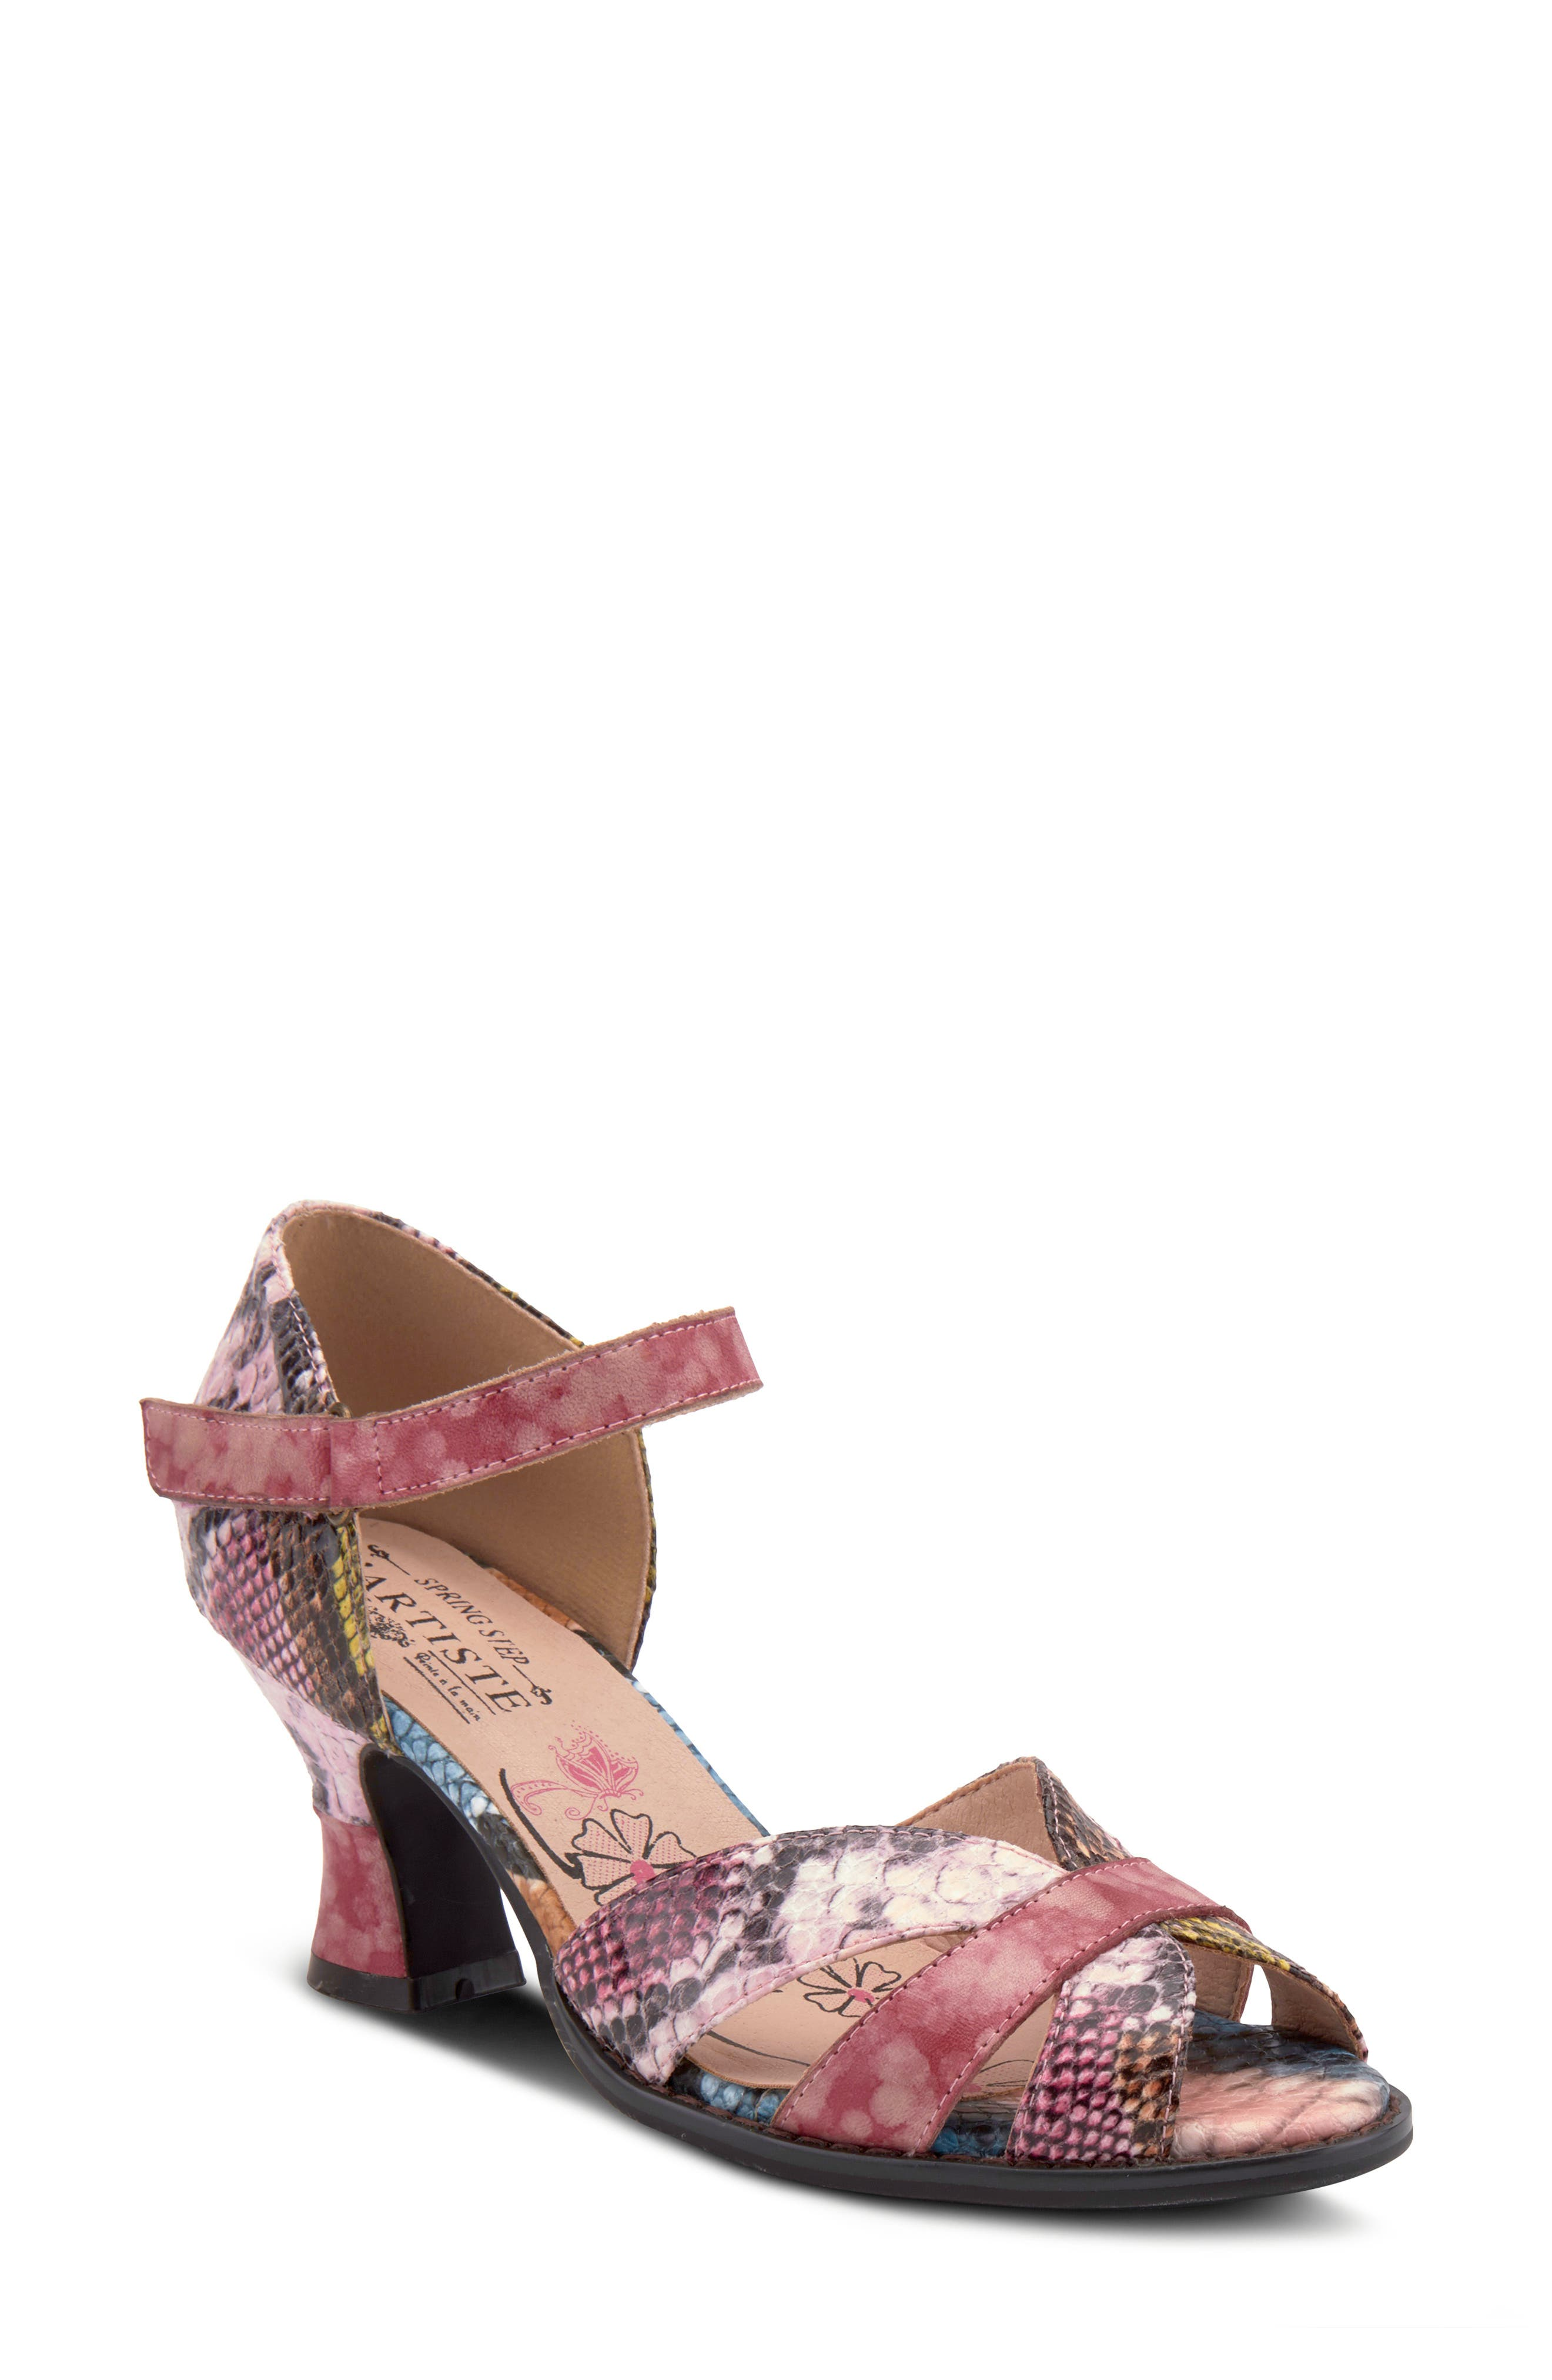 A flared statement heel supports this comfortably cushioned sandal made from hand-painted leather. Style Name:L\\\'Artiste Glamour Sandal (Women). Style Number: 6000085. Available in stores.